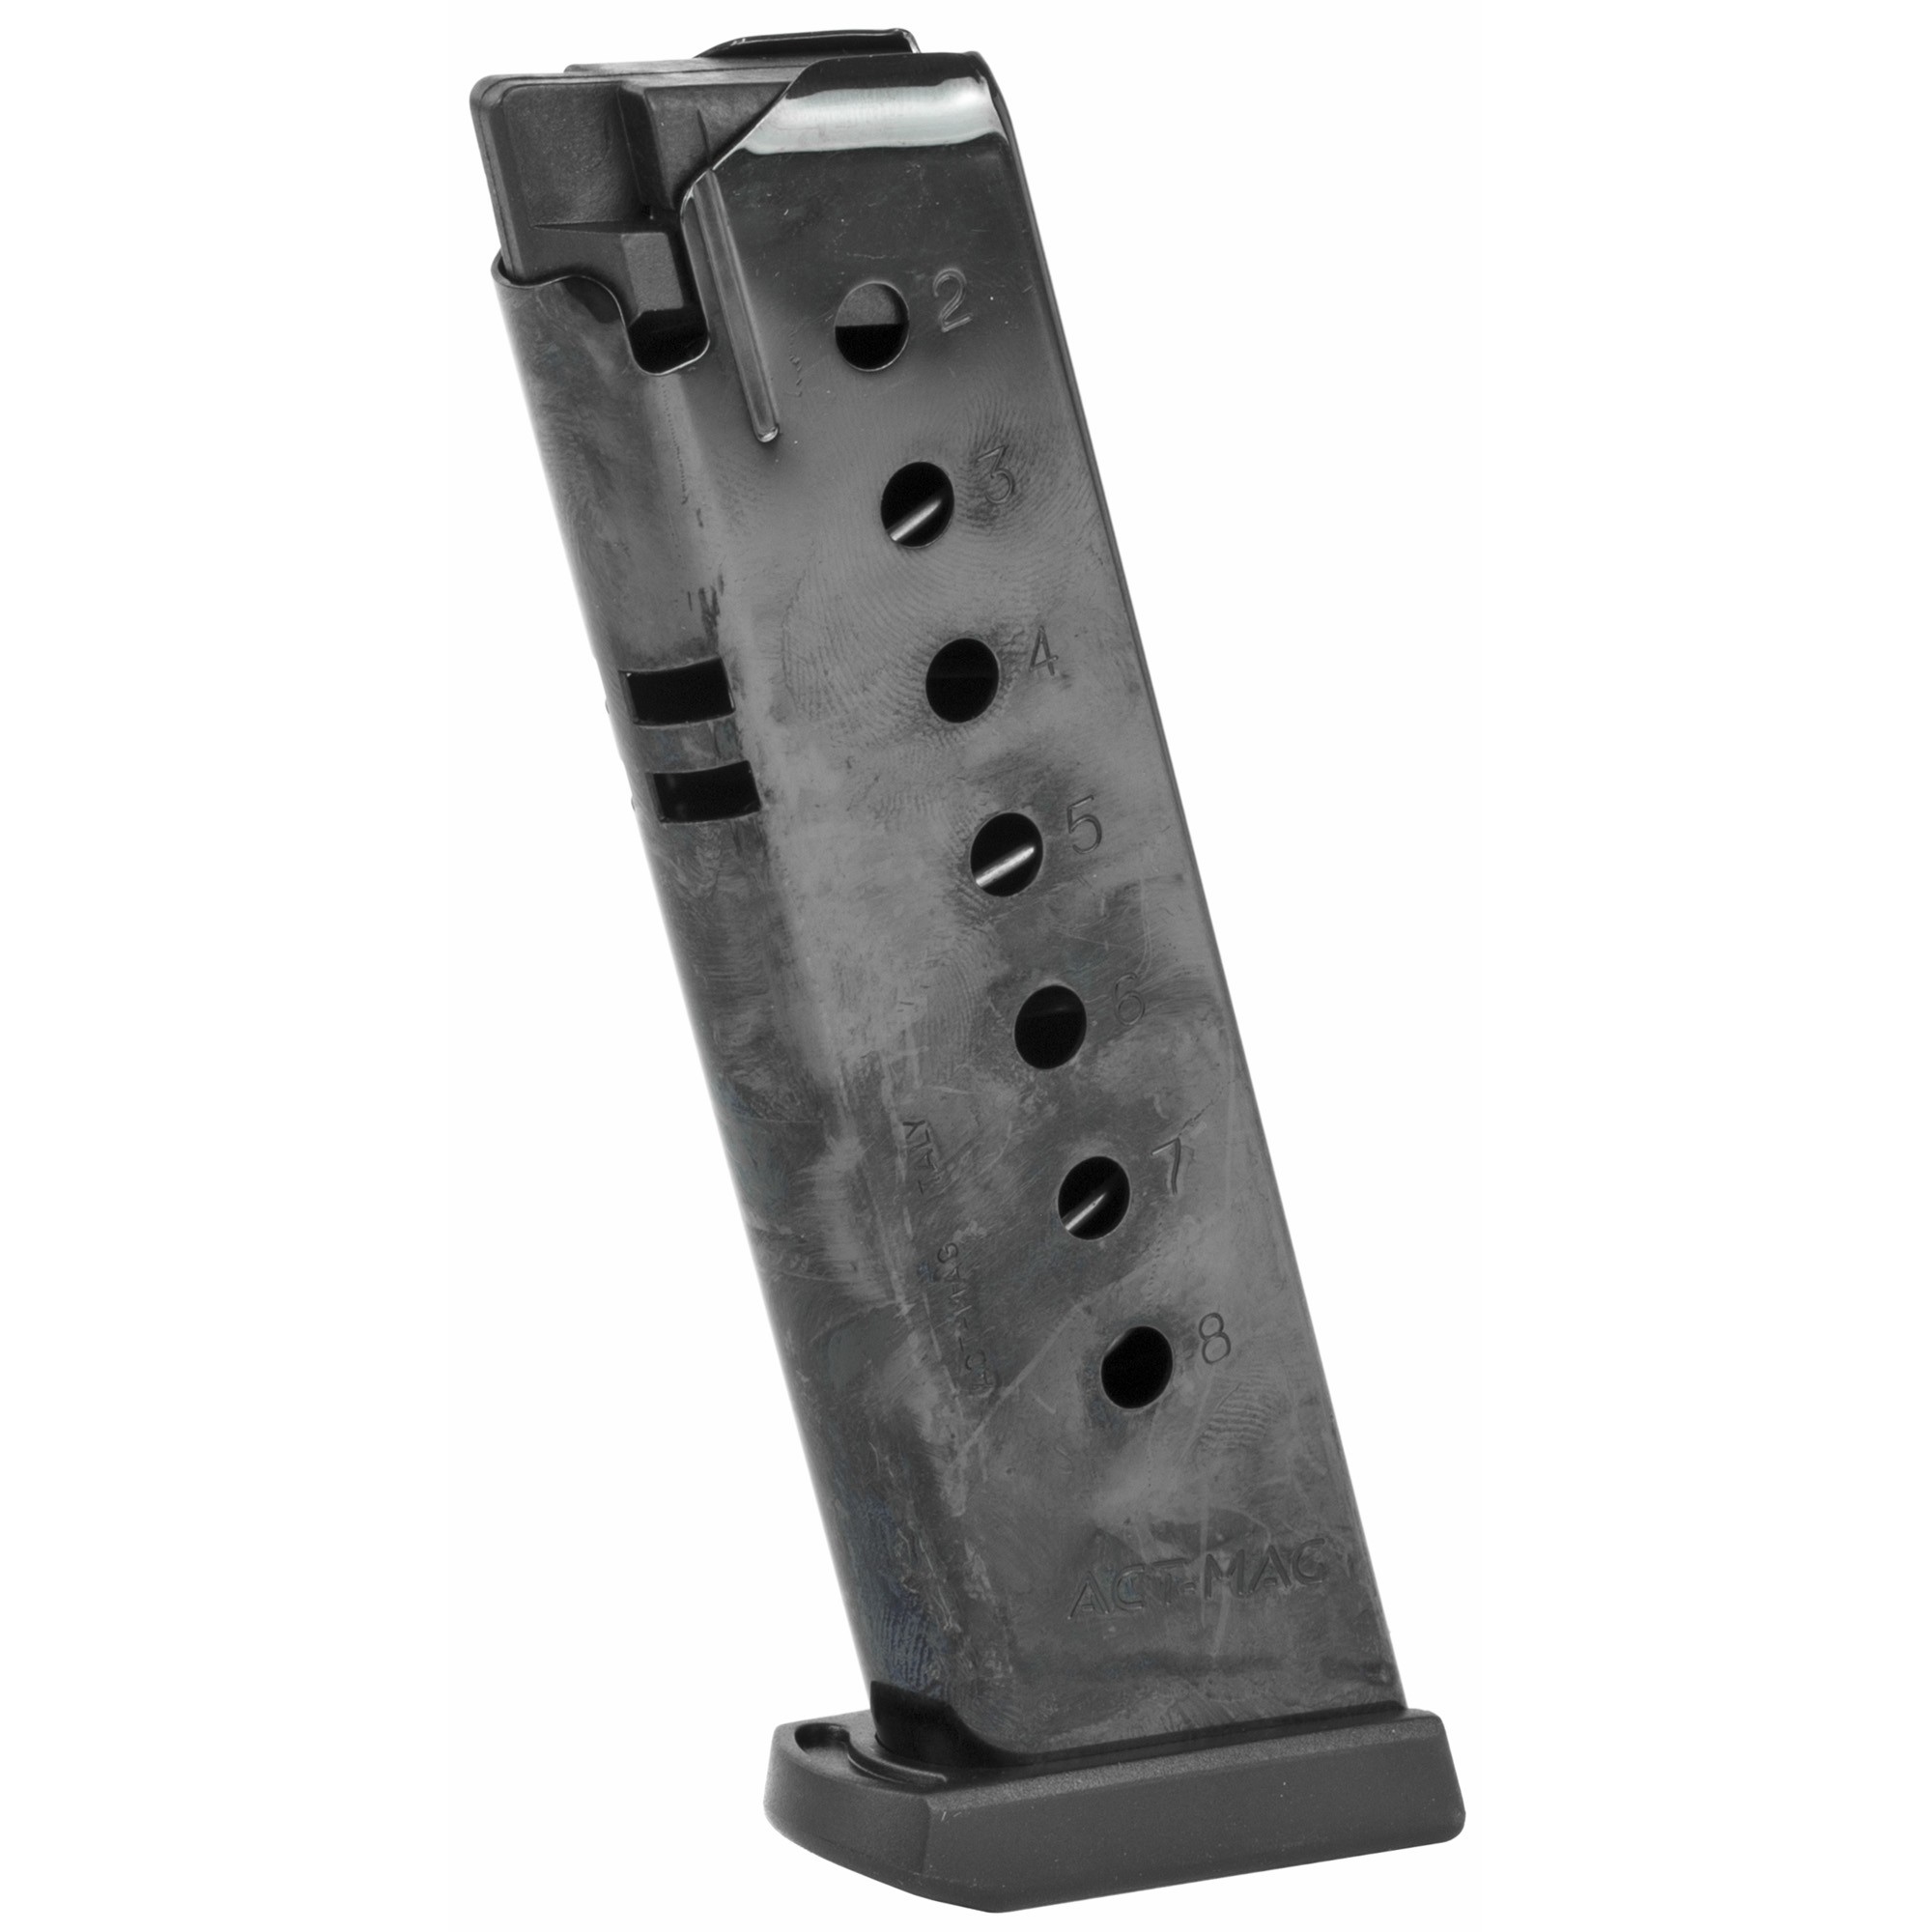 """This ACT-MAG for Sig Sauer P220 is a standard factory replacement magazine. This magazine has an 8 round capacity"""" is chambered in .45ACP and features a steel magazine body with a blued finish."""